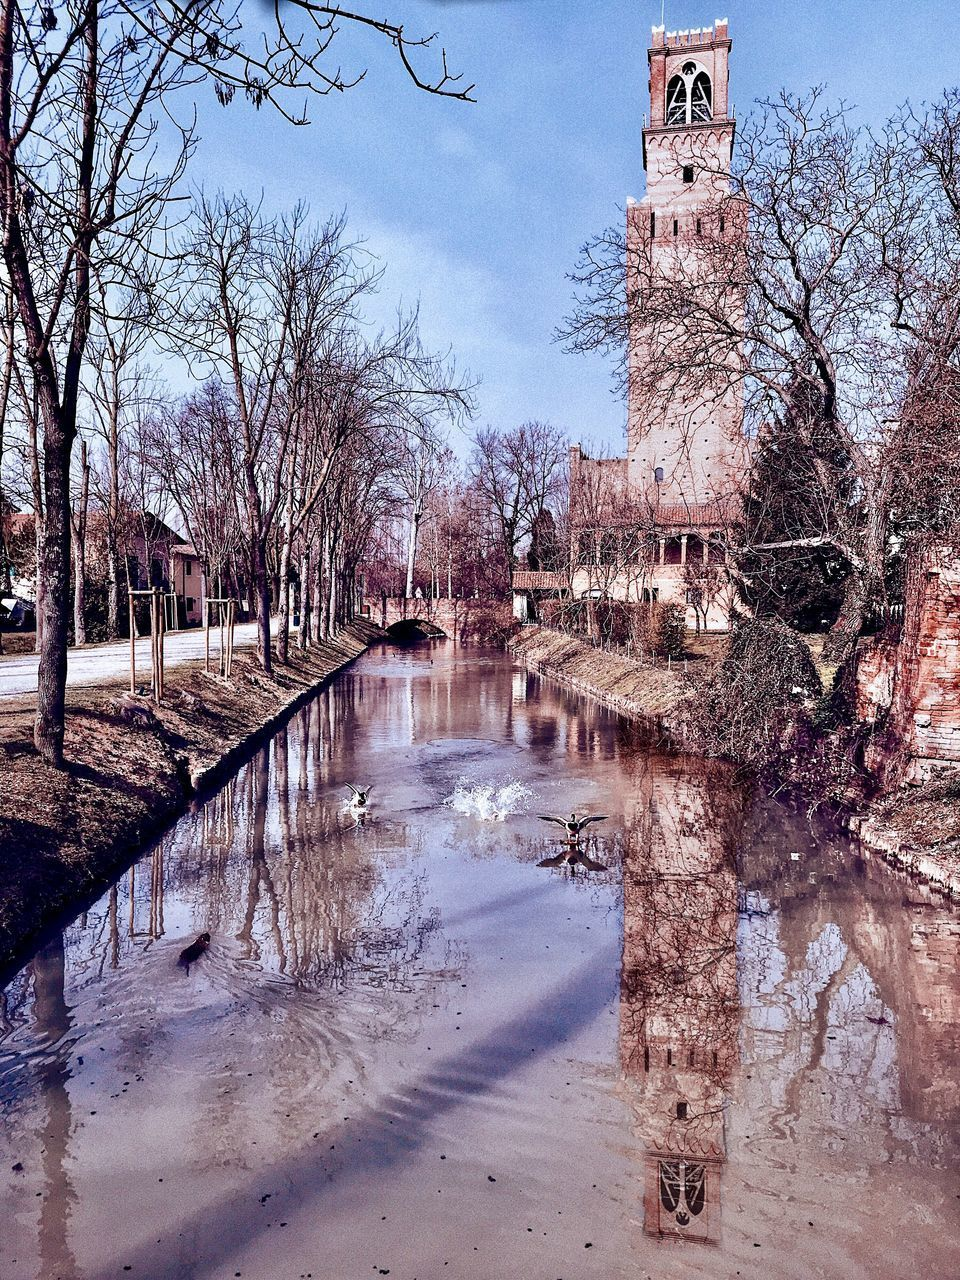 water, tree, architecture, reflection, built structure, building exterior, sky, bare tree, building, plant, nature, no people, day, winter, connection, bridge, cold temperature, river, outdoors